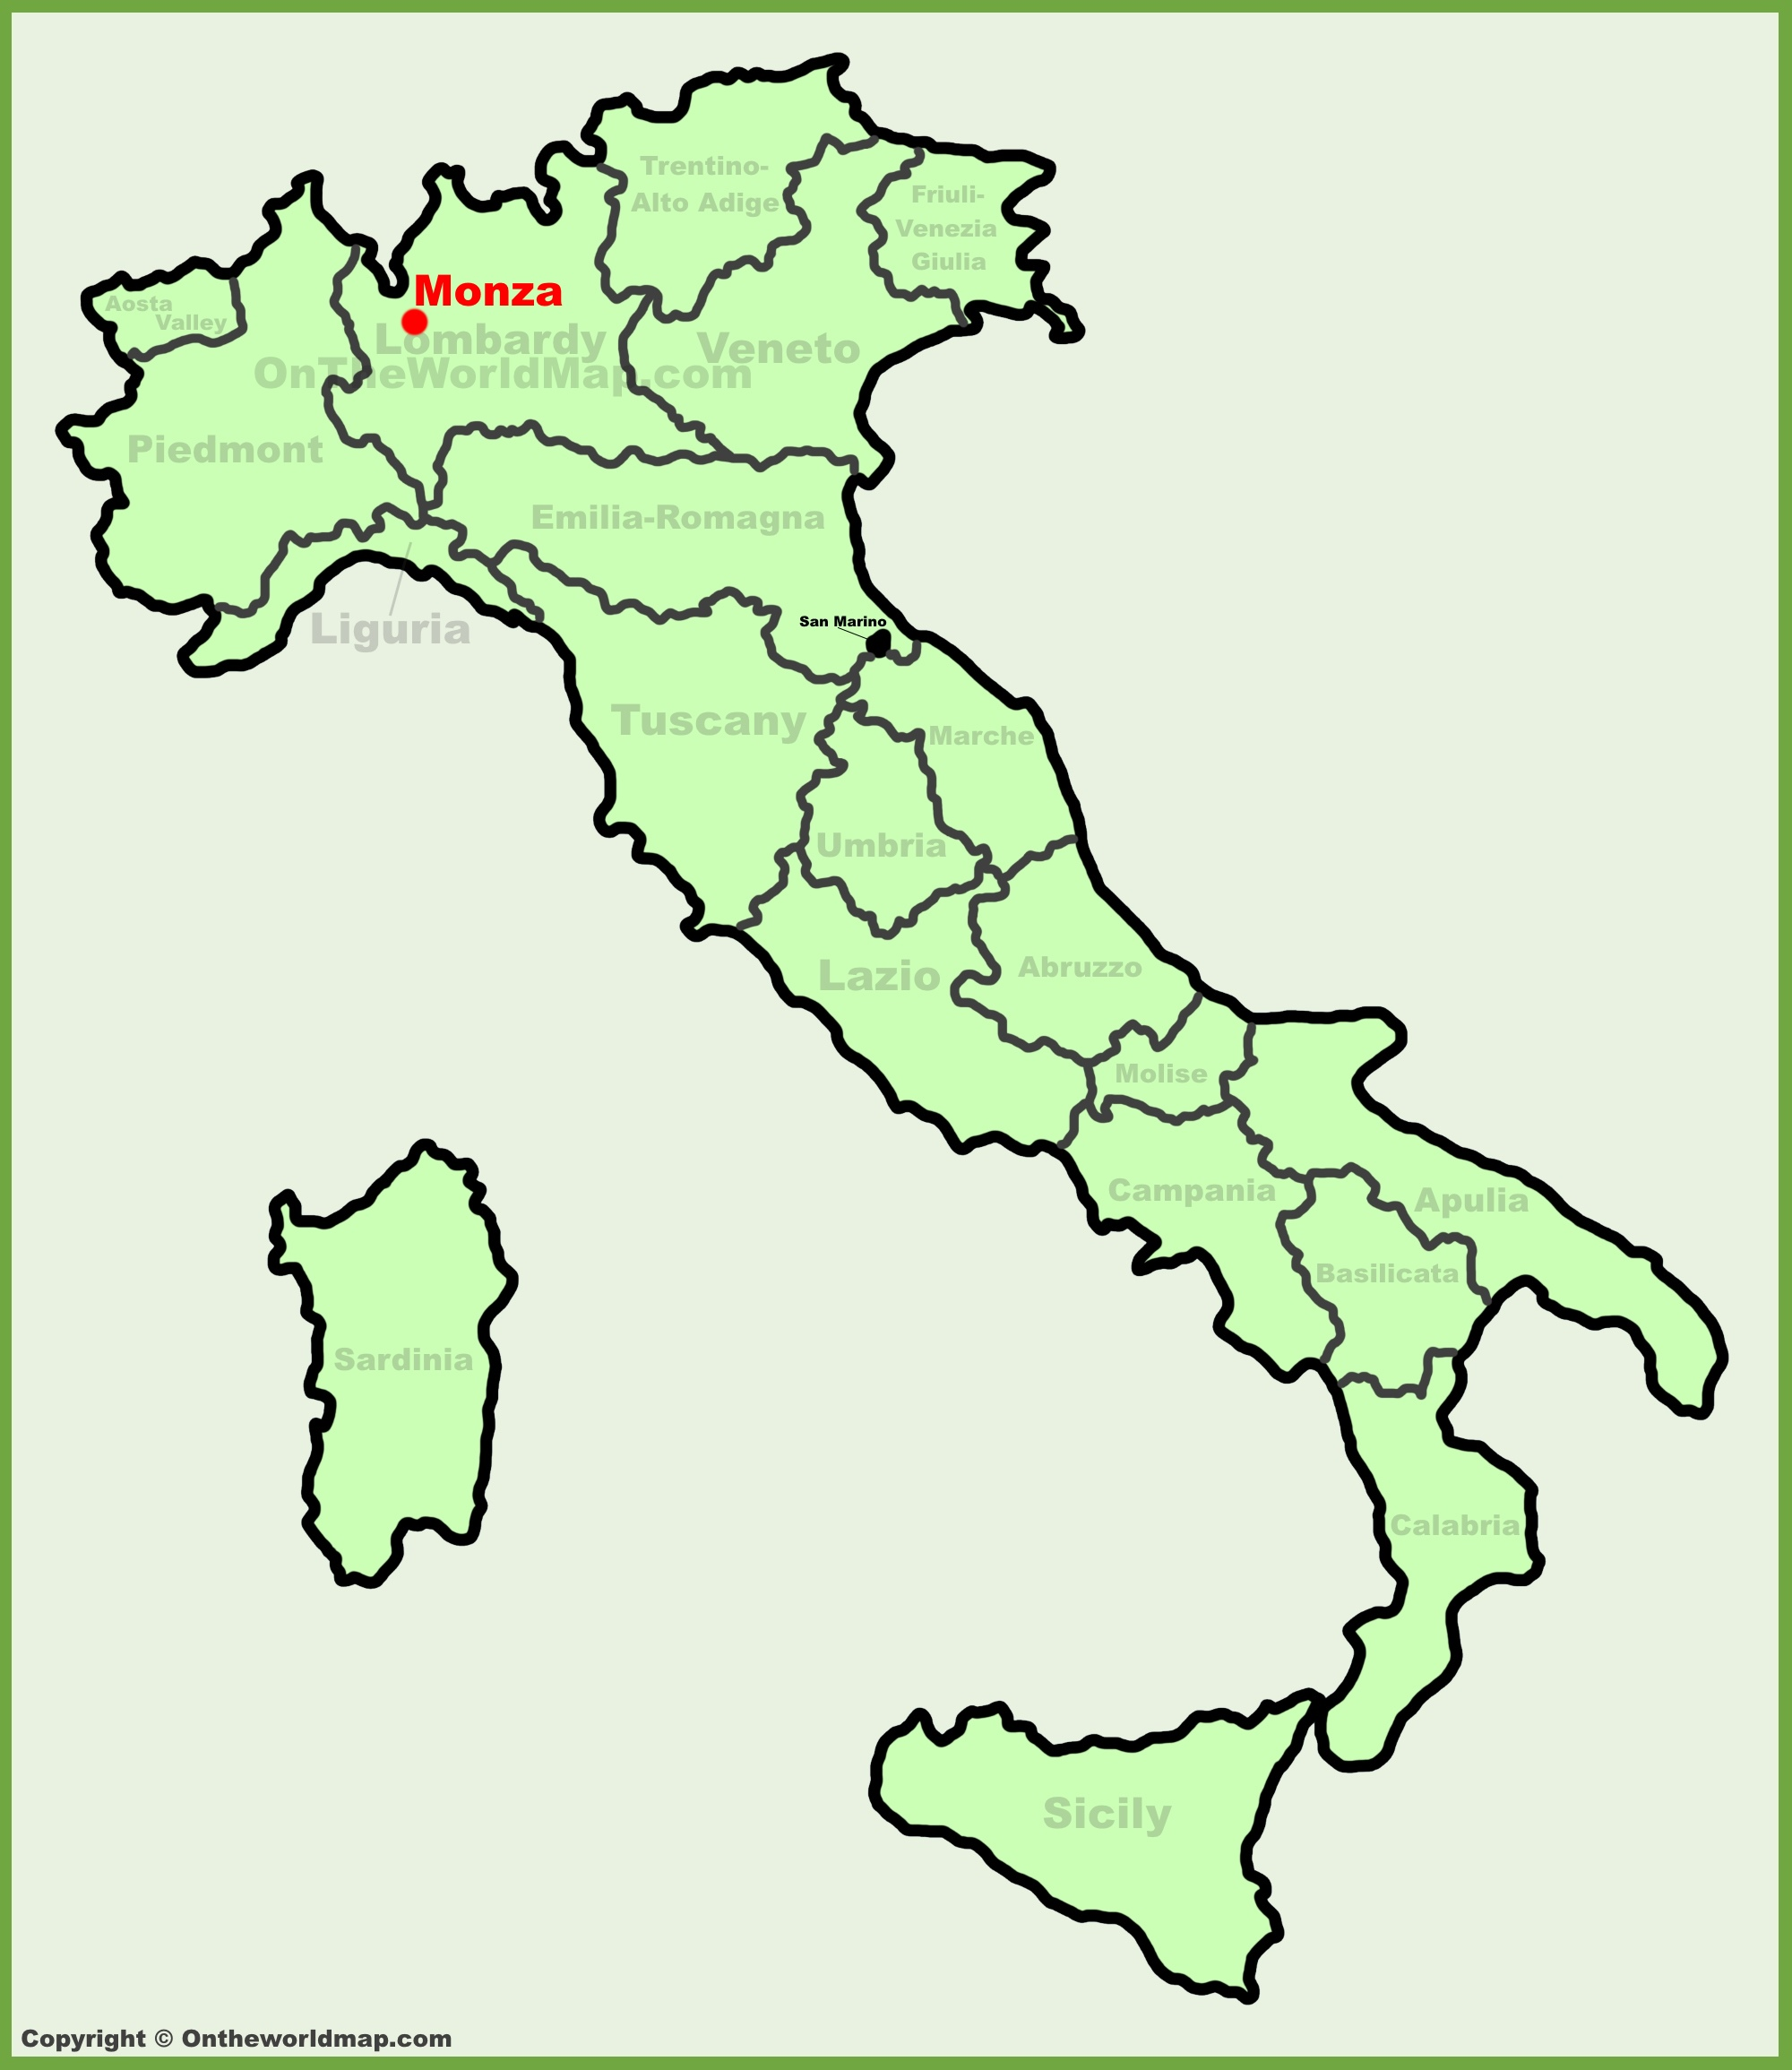 Monza location on the Italy map